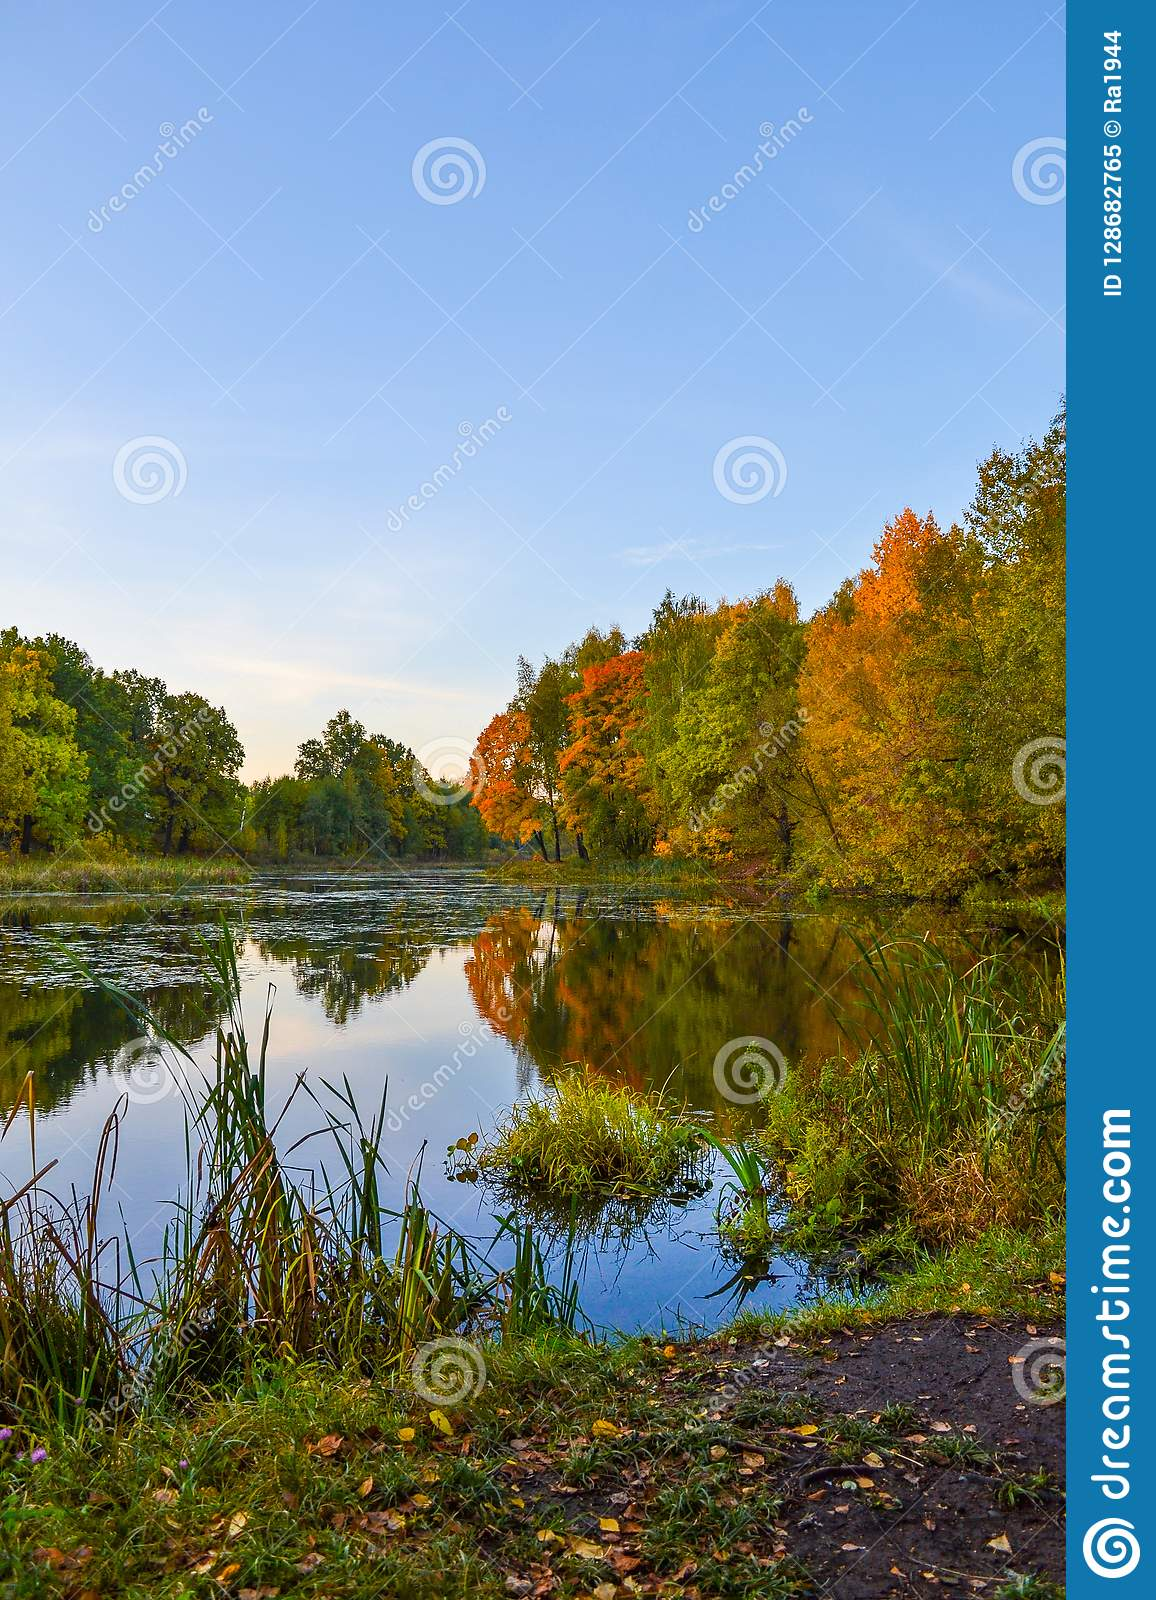 Beautiful autumn landscape. Lake, yellow and red trees by the lake. Reflection in water. Blue sky. Sunny autumn day